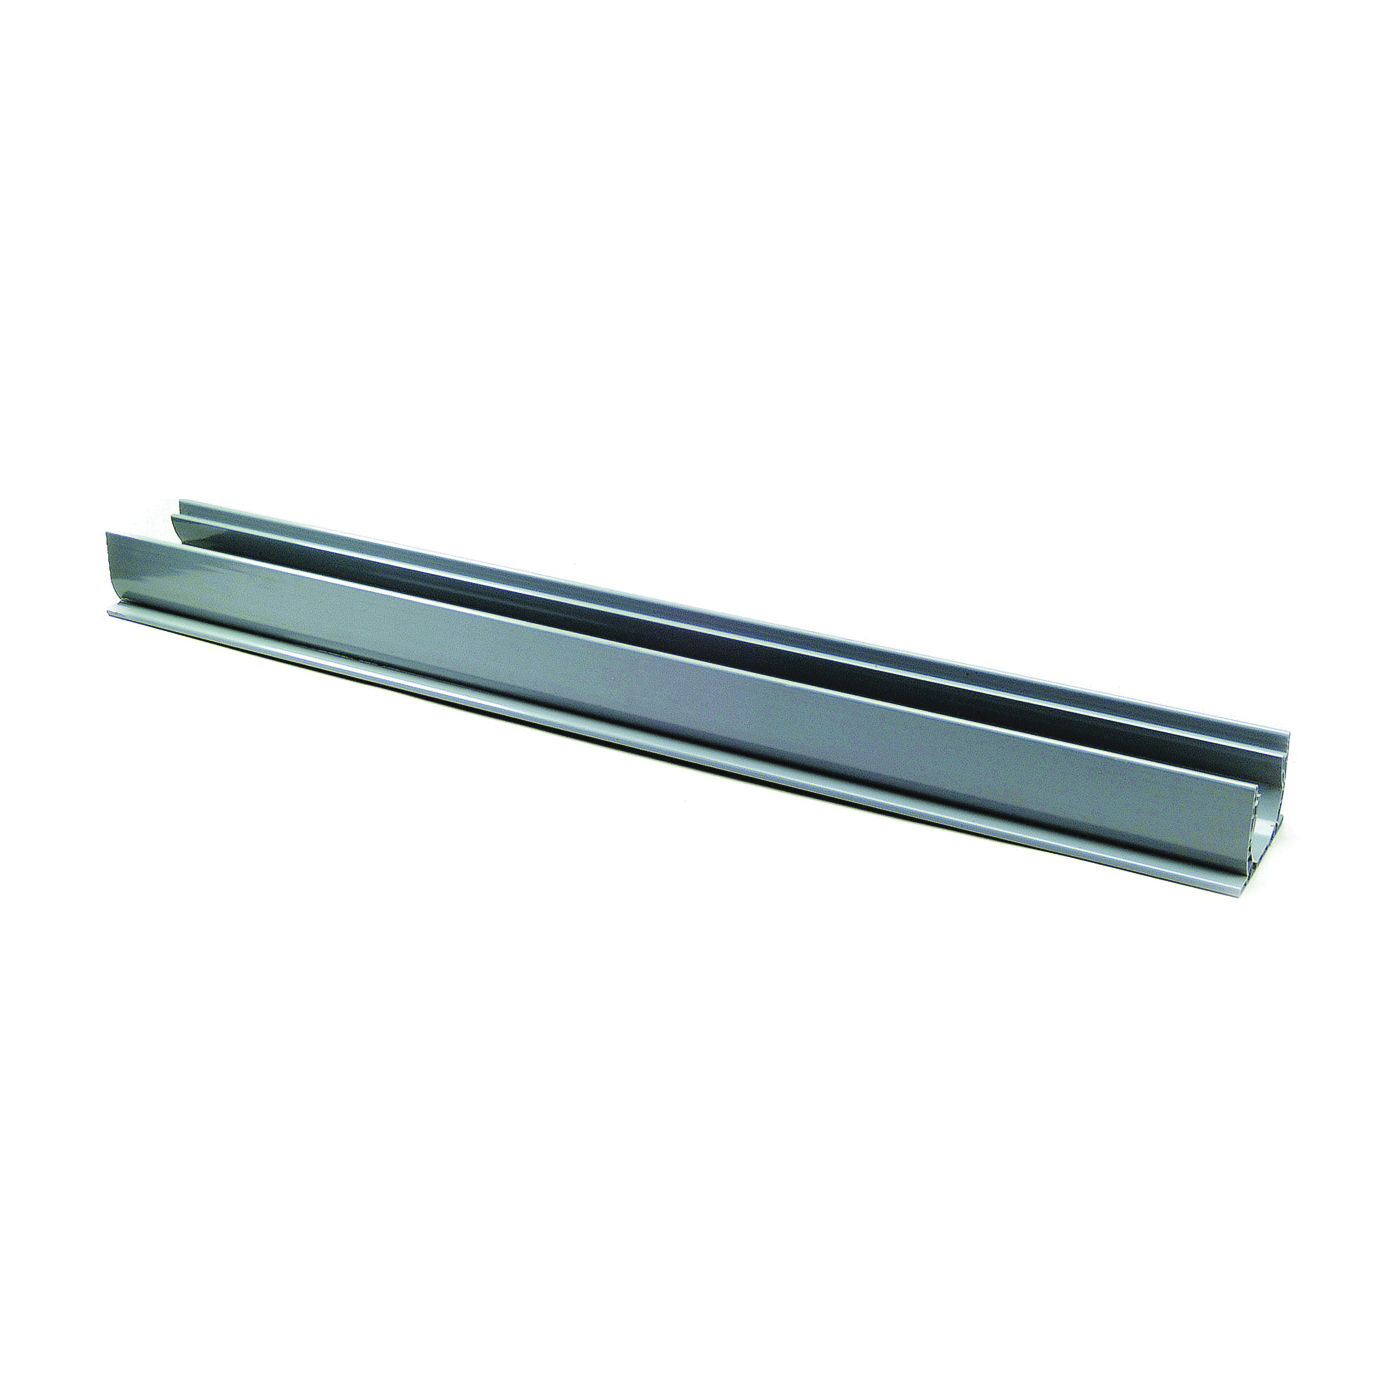 Picture of NDS 400 Channel Drain, 4 ft L, PVC, Gray